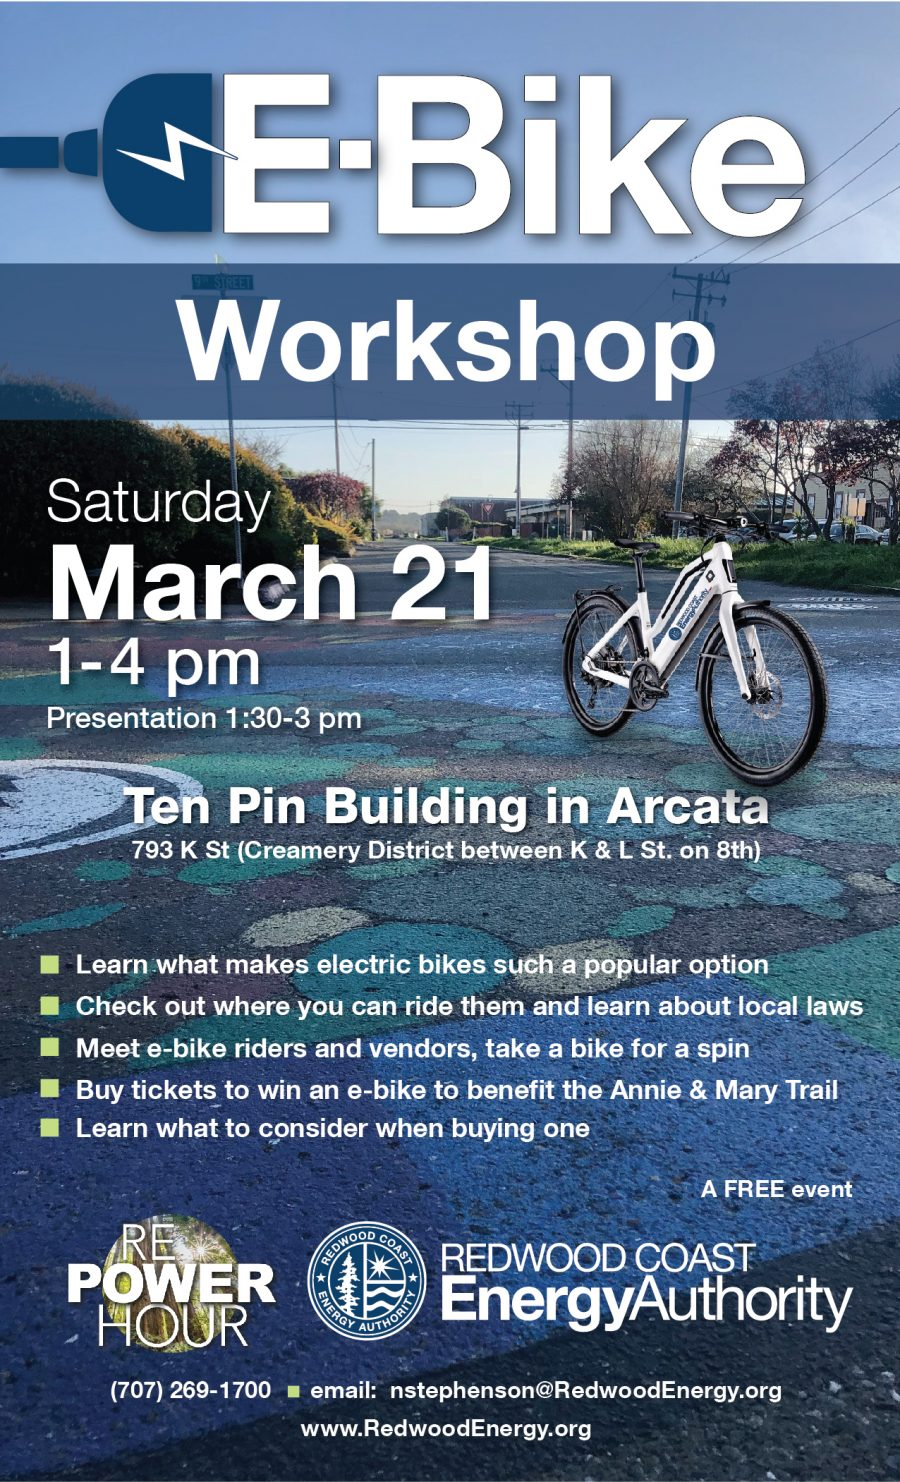 Electric bike workshop flyer featuring a bike in front of the creamery district